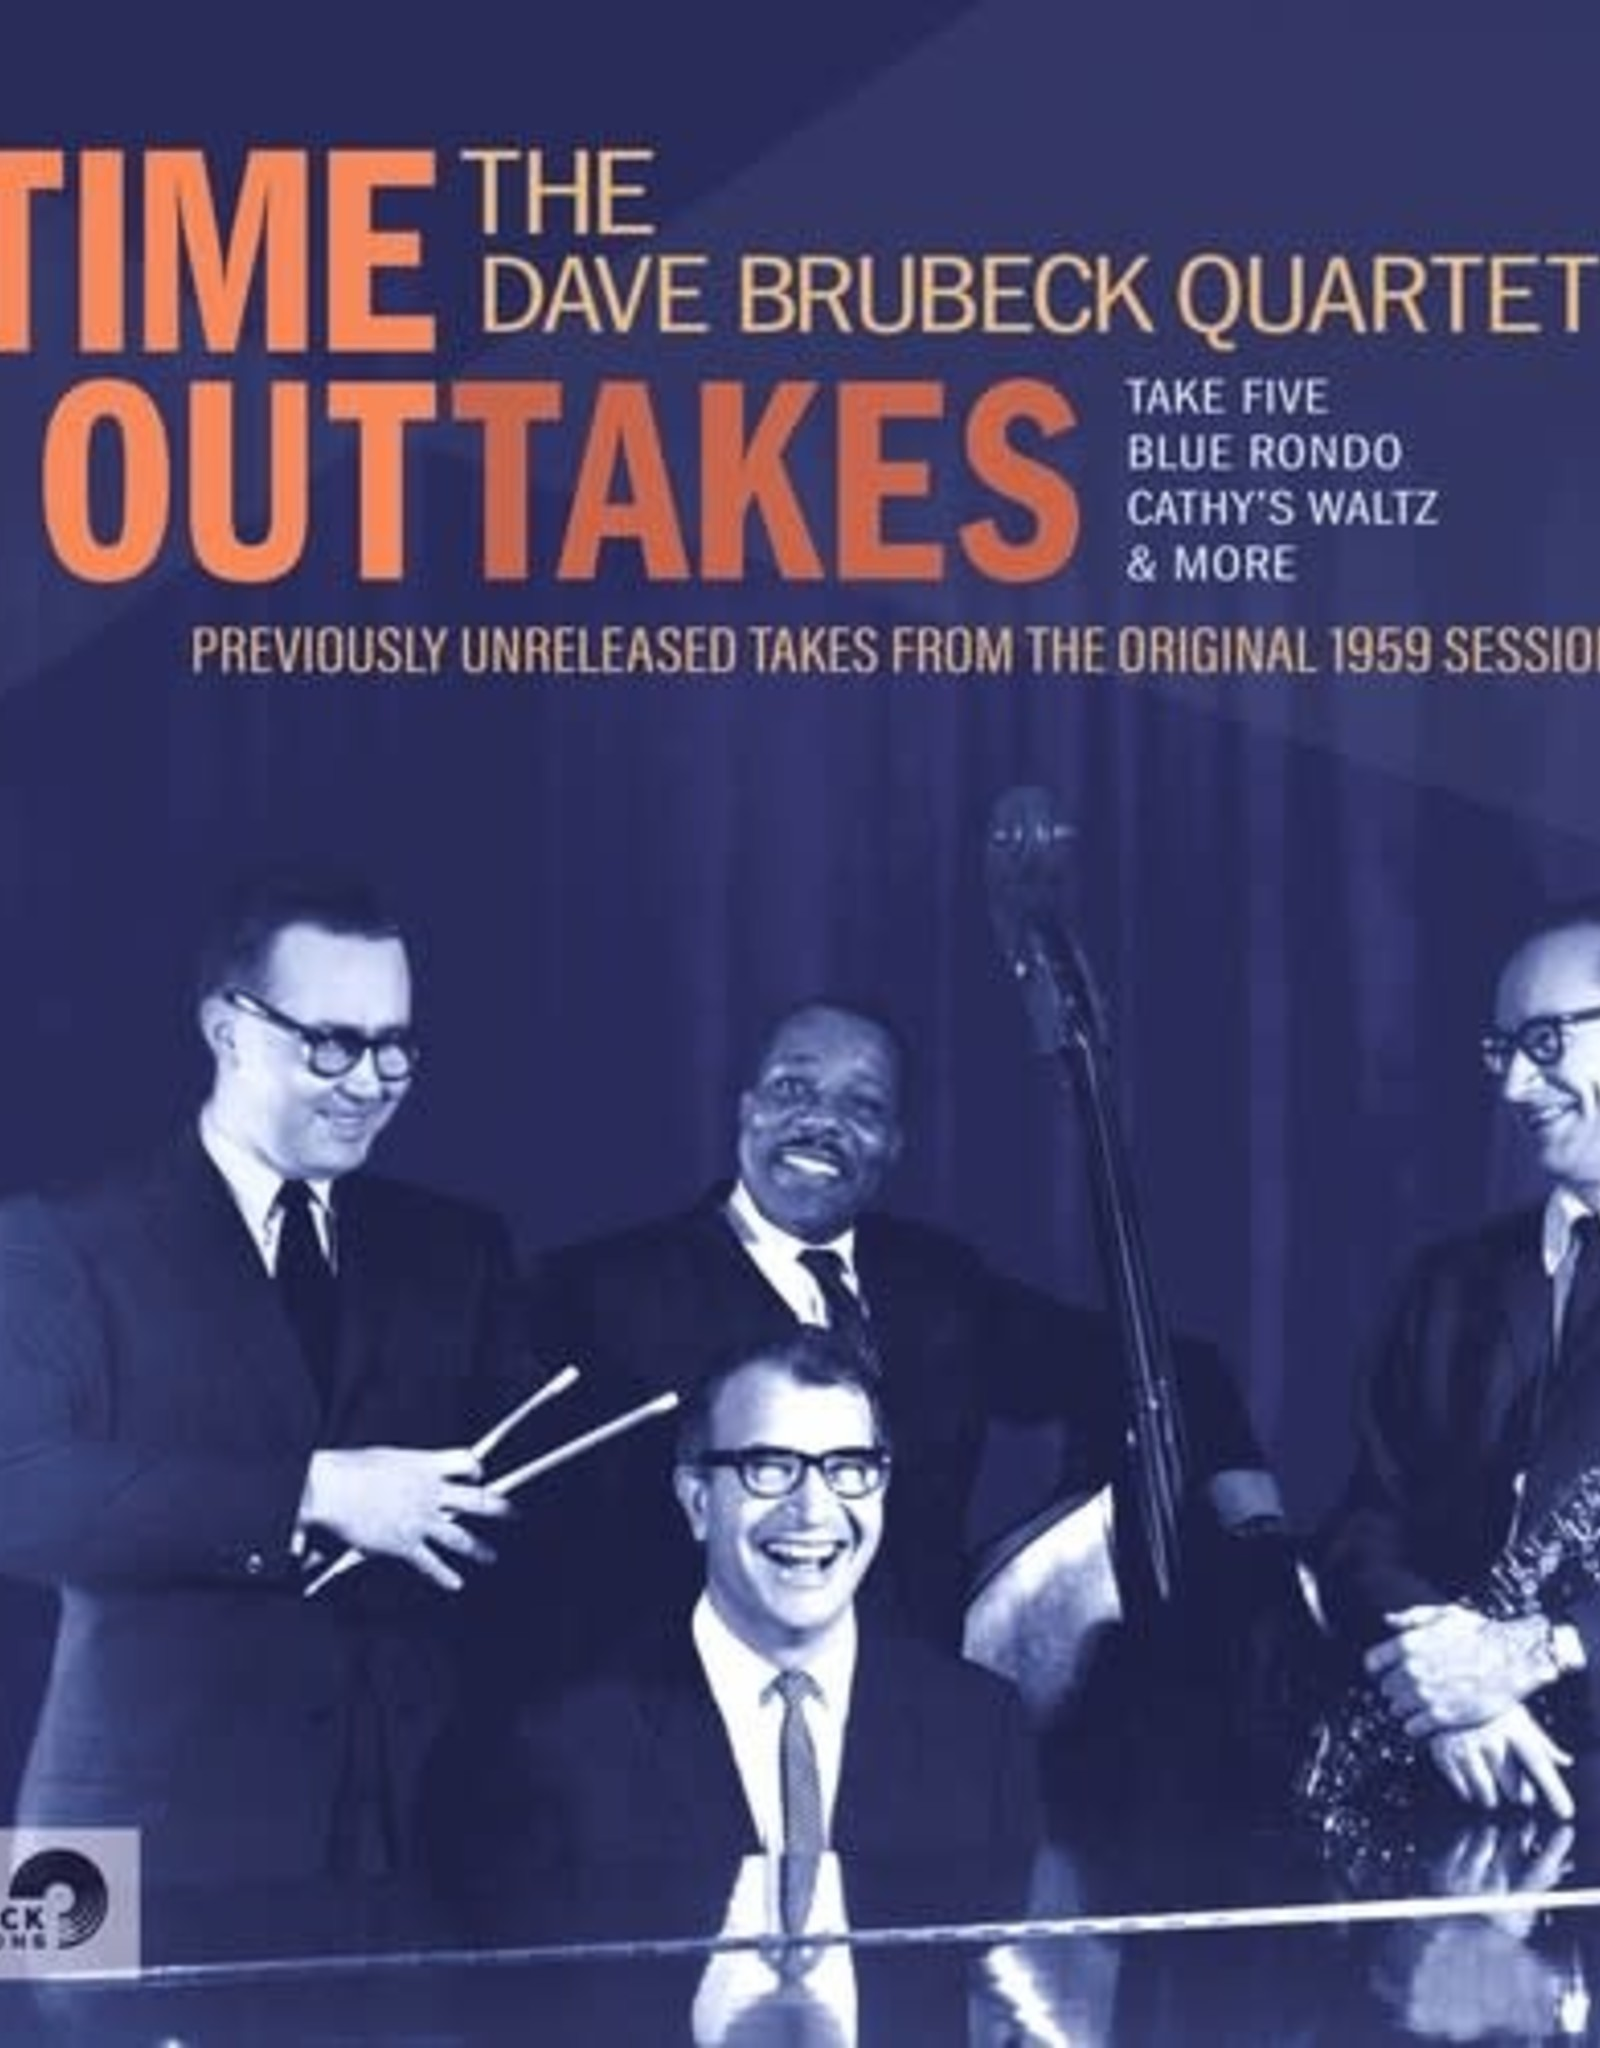 Dave Brubeck - Time Outtakes (Previously Unreleased Takes From the Original 1959 Sessions)